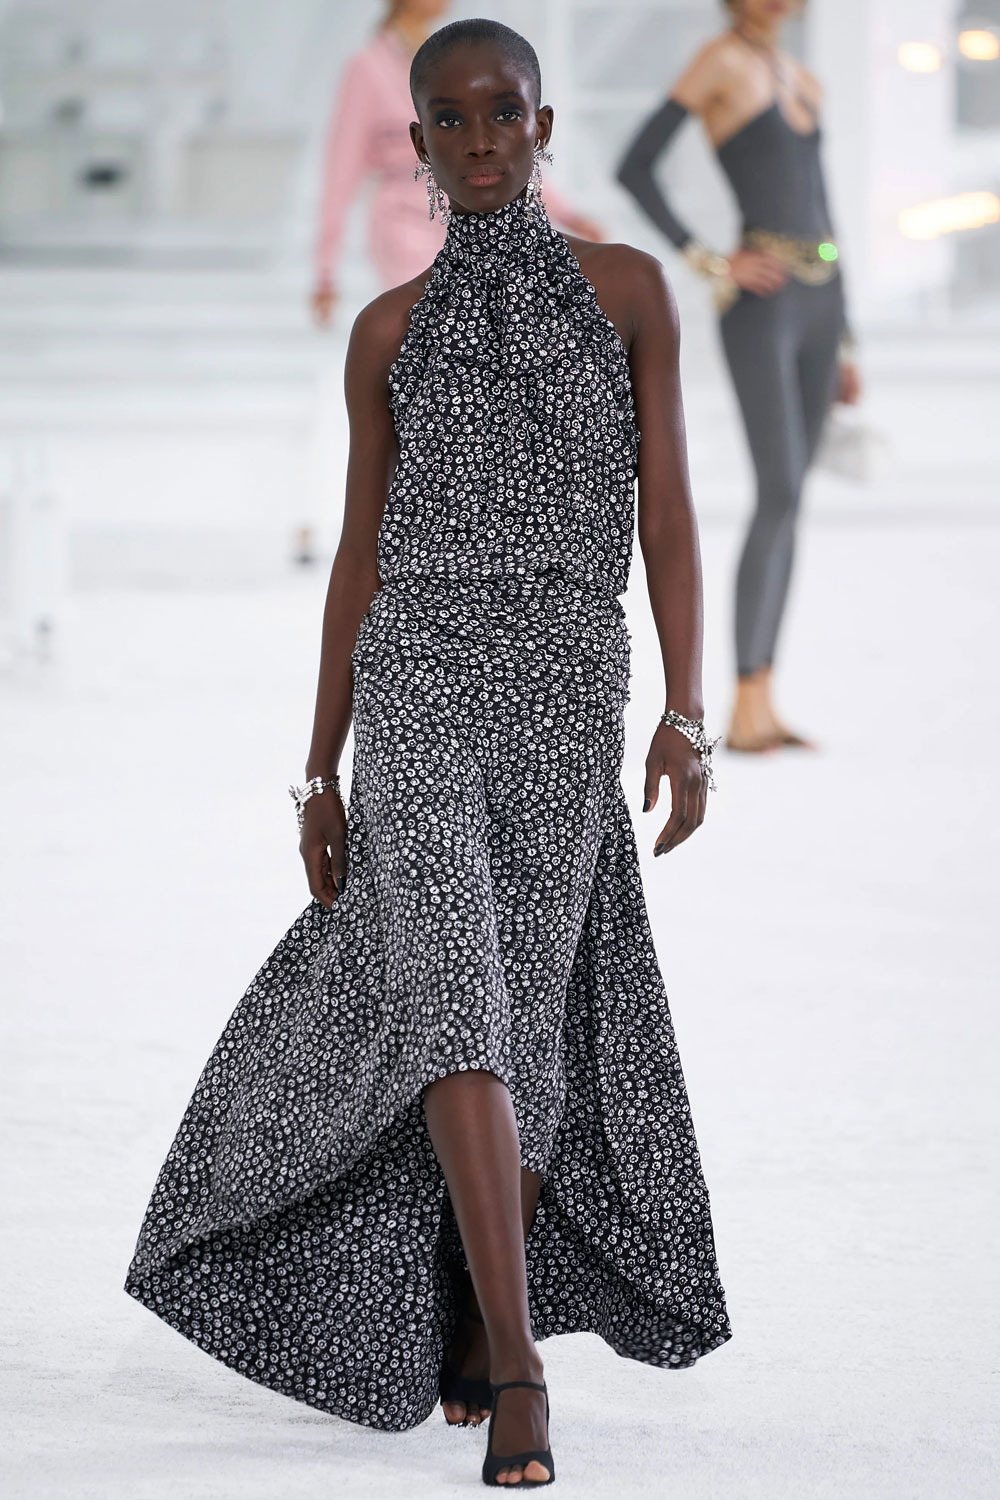 fashion_week_spring_2021_ready-to-wear_chanel_7